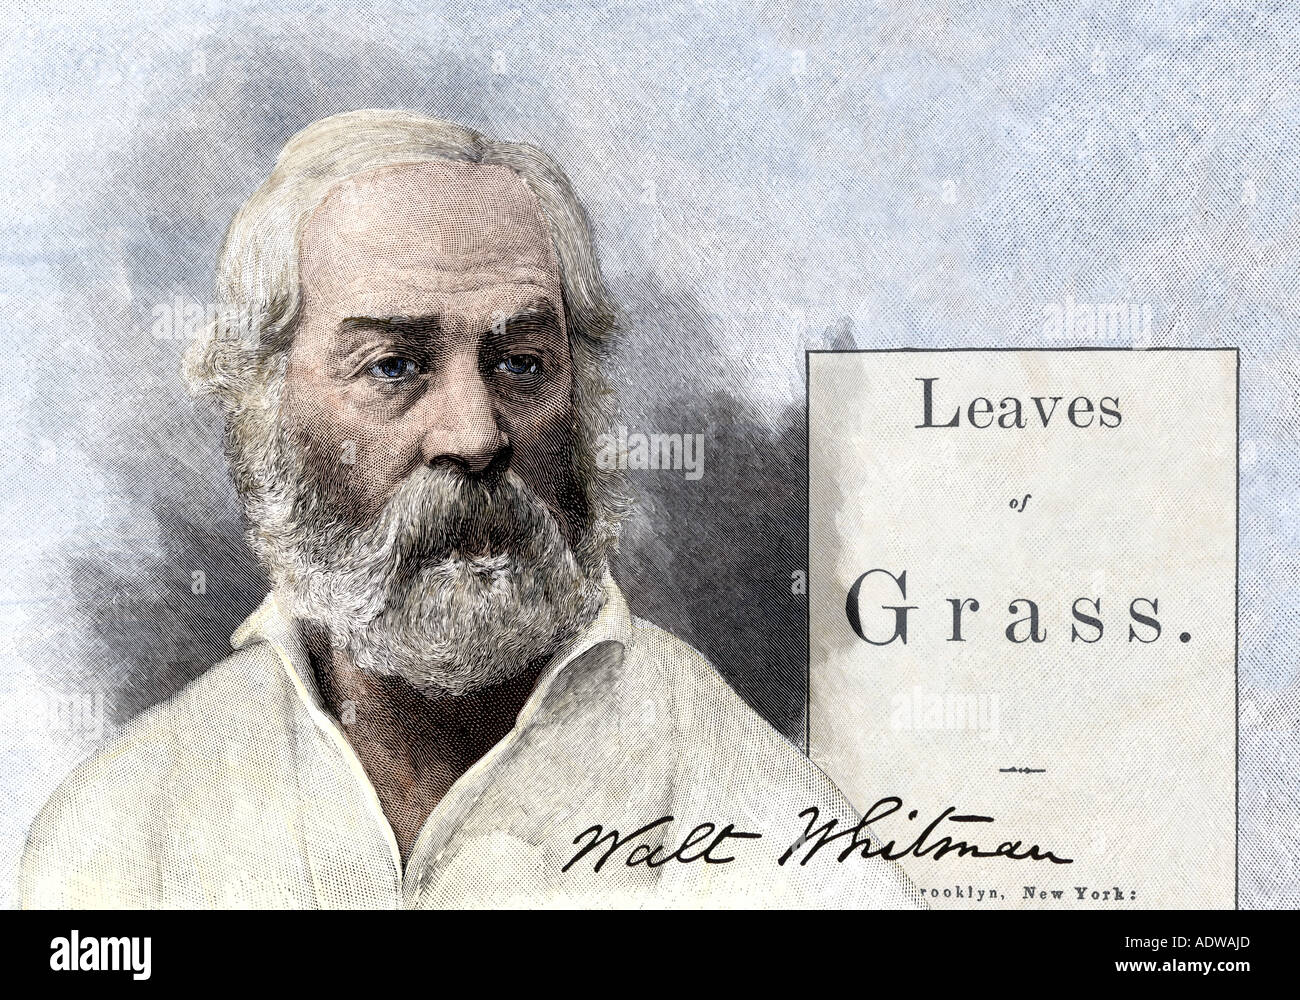 Walt Whitman and the first edition title page of his epic poem Leaves of Grass 1855. Hand-colored woodcuts digitally combined - Stock Image